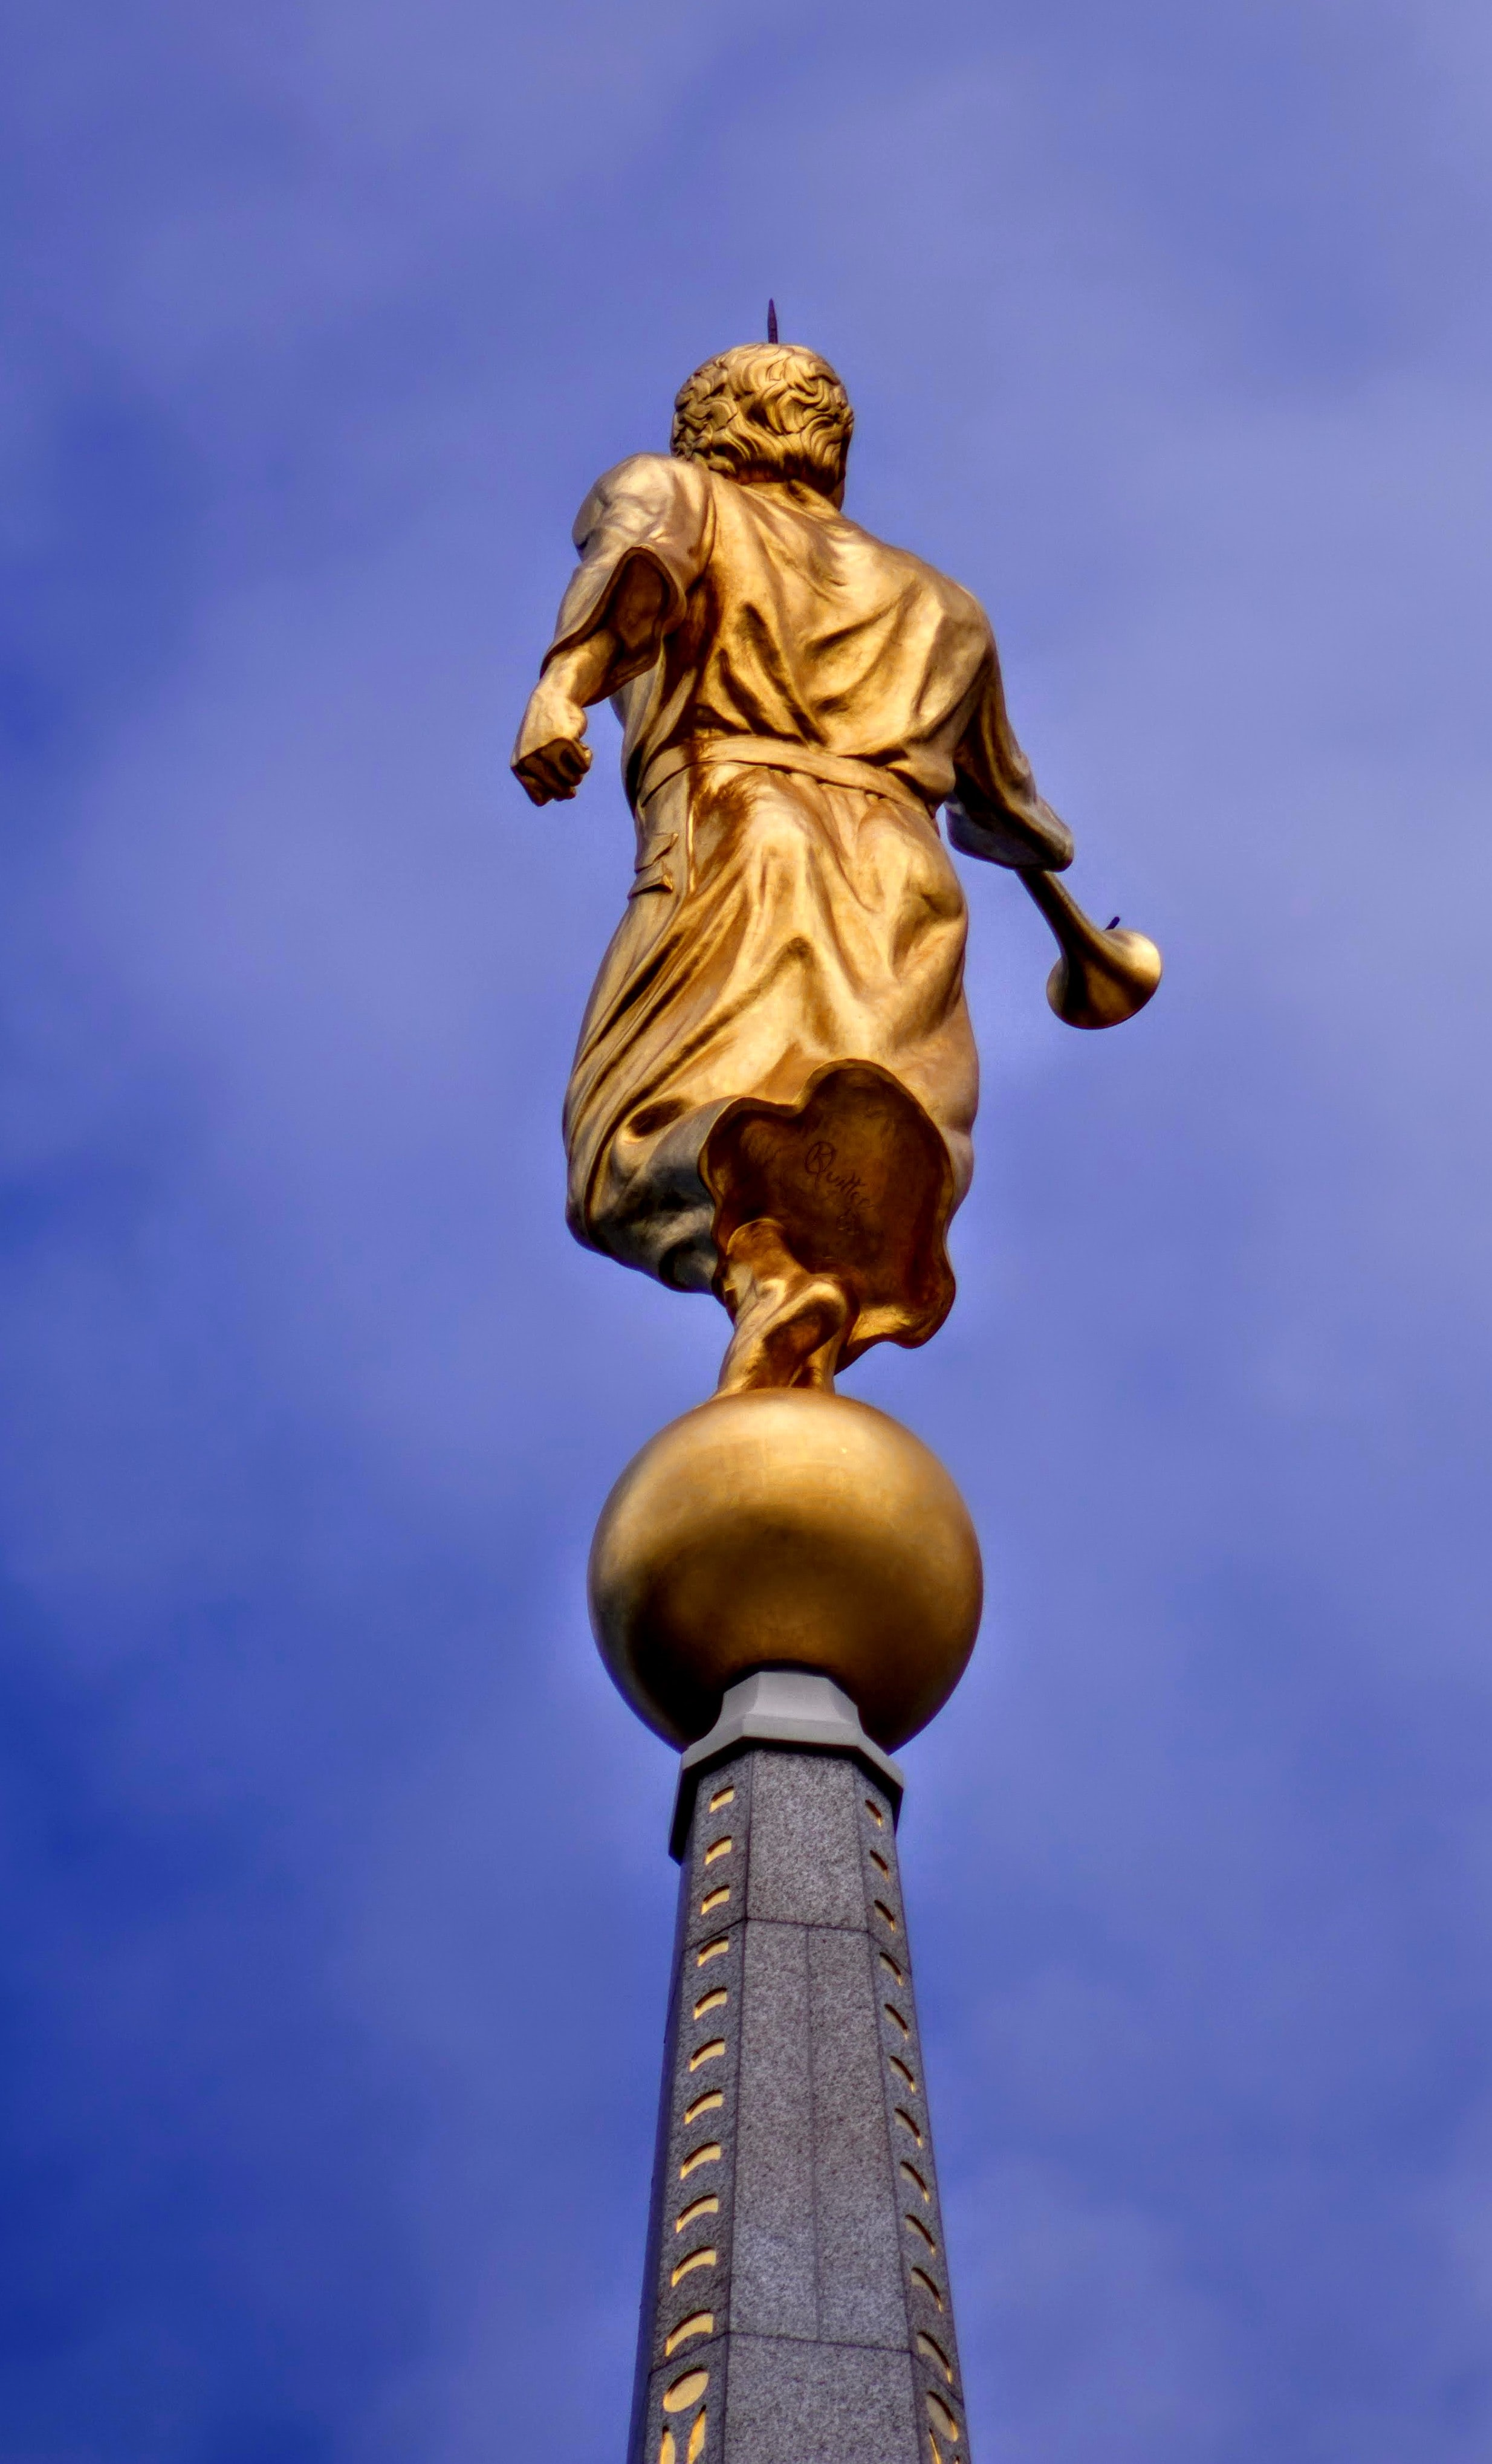 low-angle photography of man statue under clear blue sky